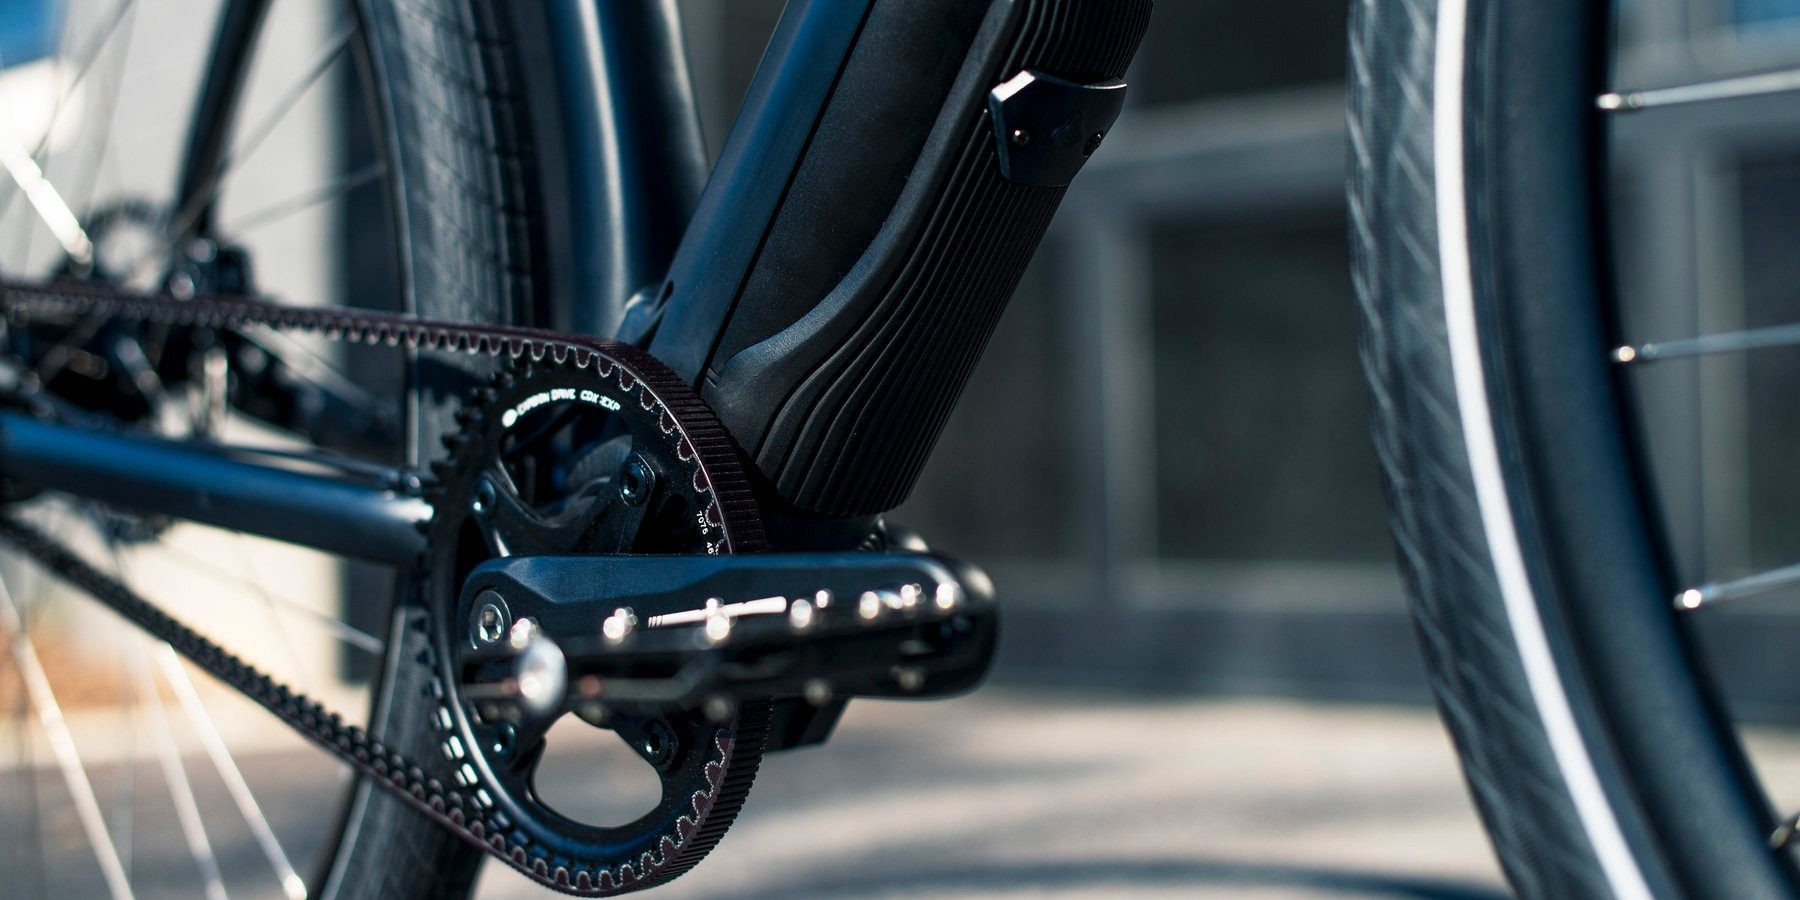 2019 Budnitz Model E electric bicycle now features removable motor and Gates belt drive - Electrek